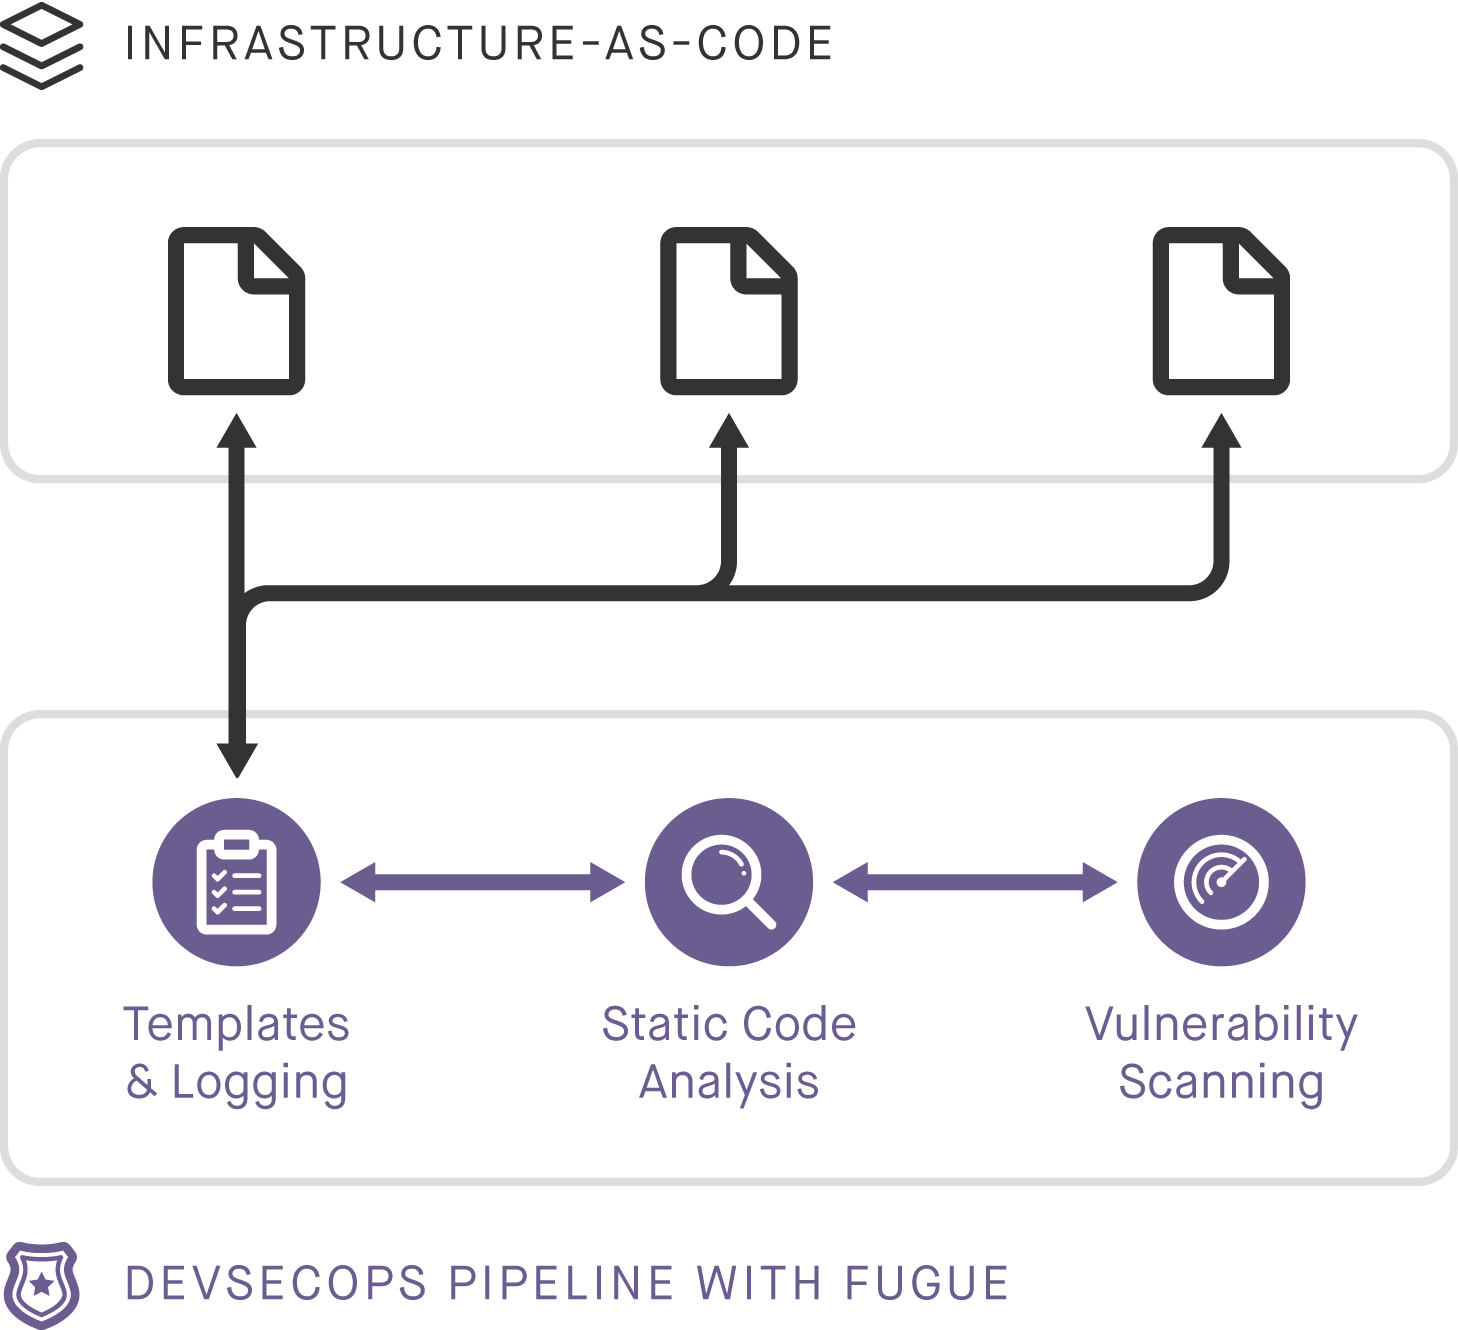 DevSecOps Pipeline with Fugue